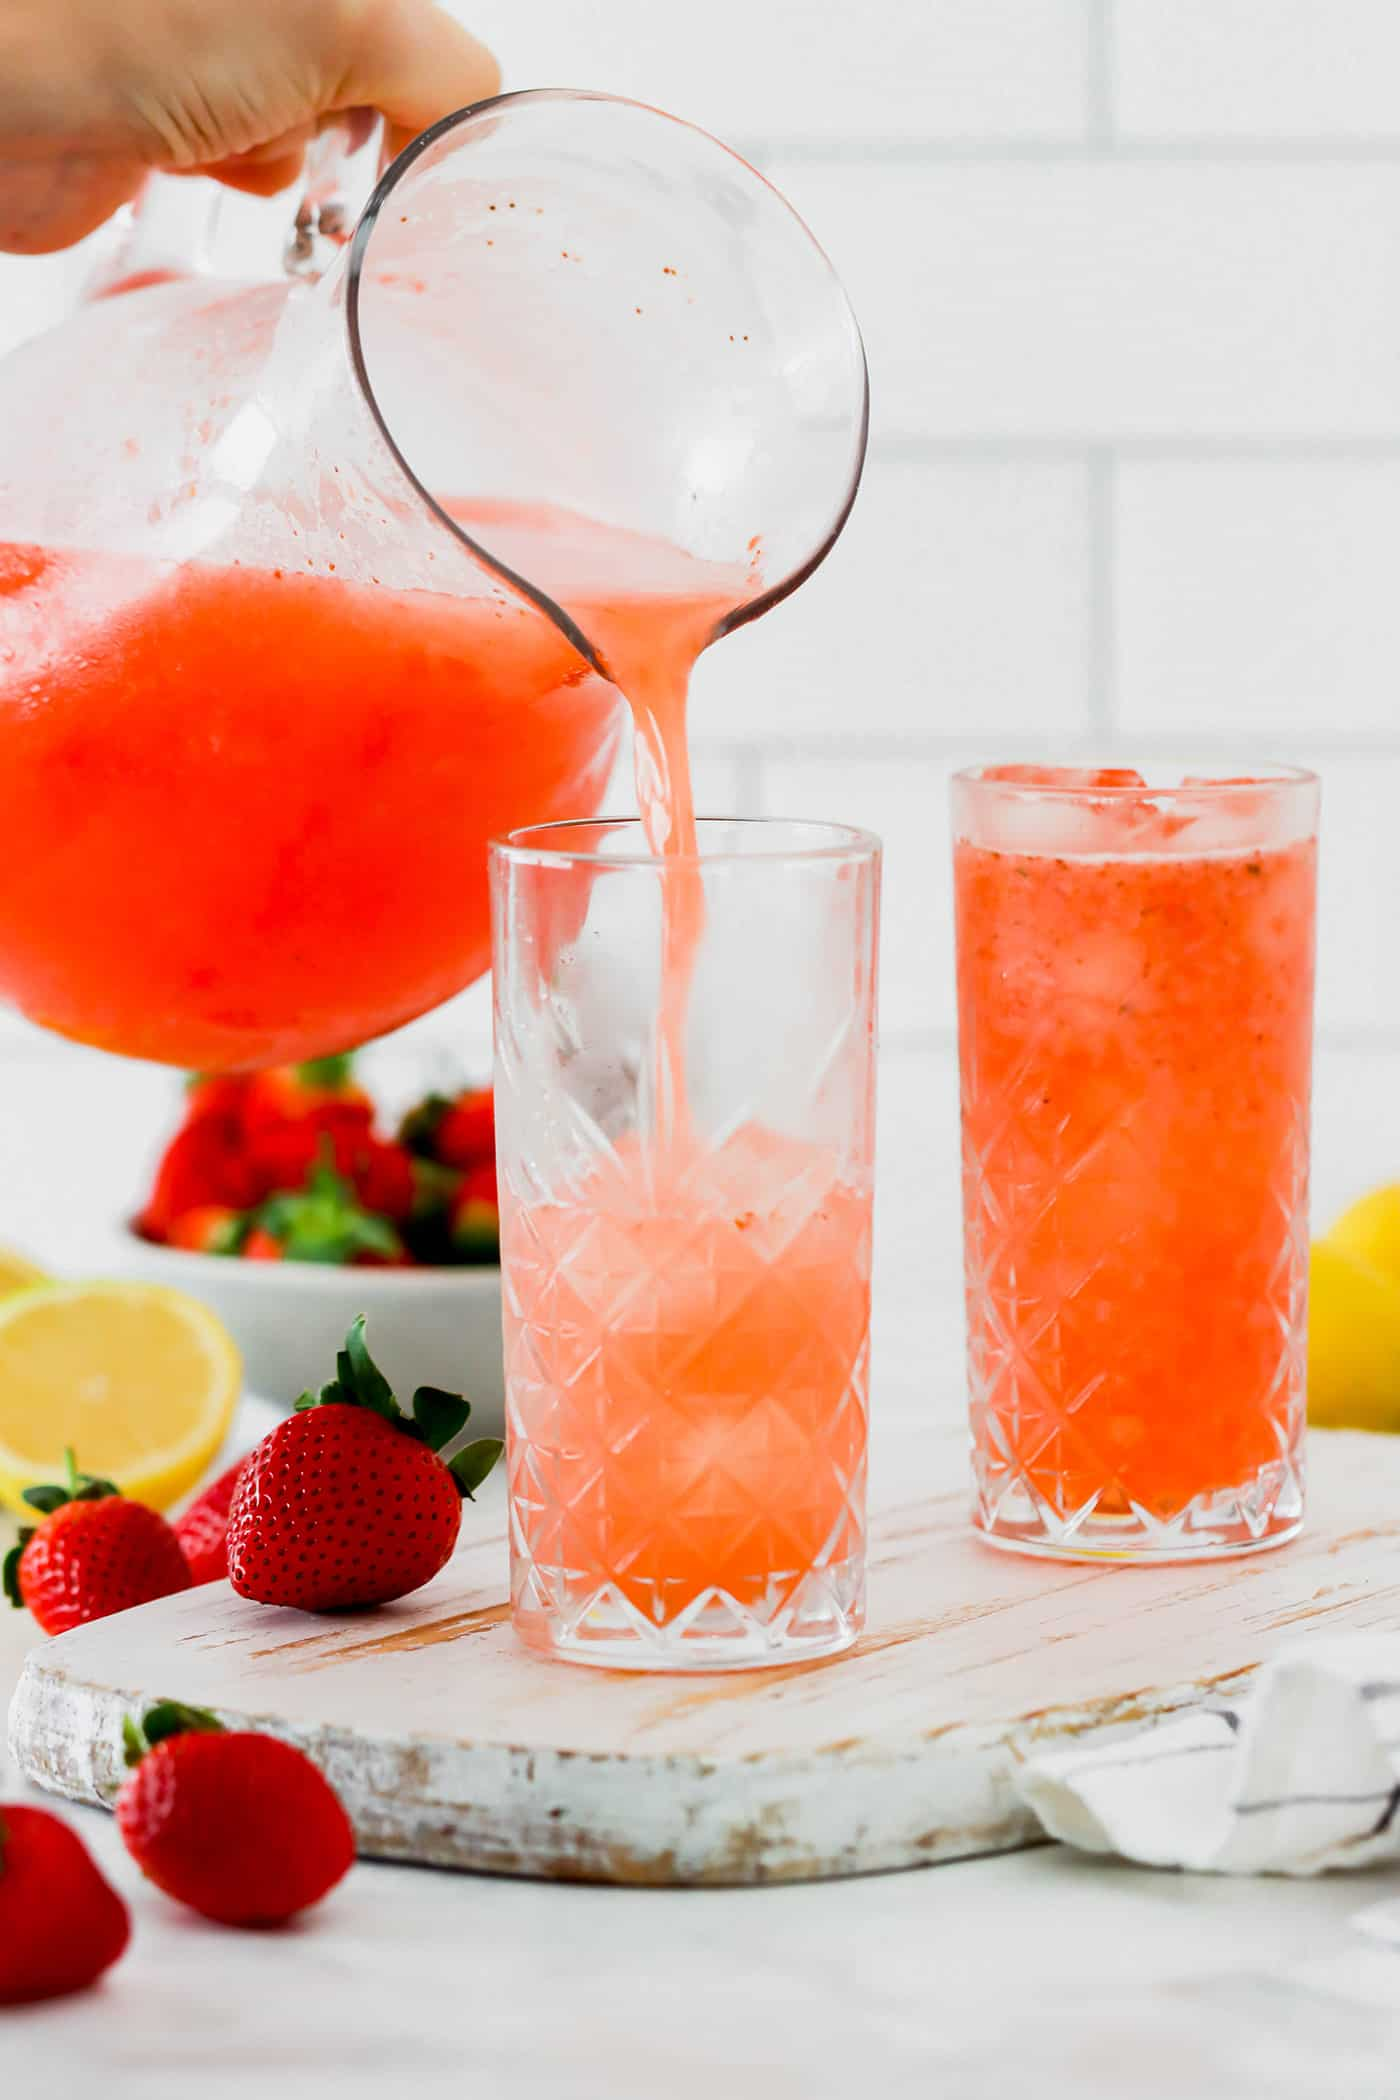 pouring strawberry lemonade from a pitcher into glasses